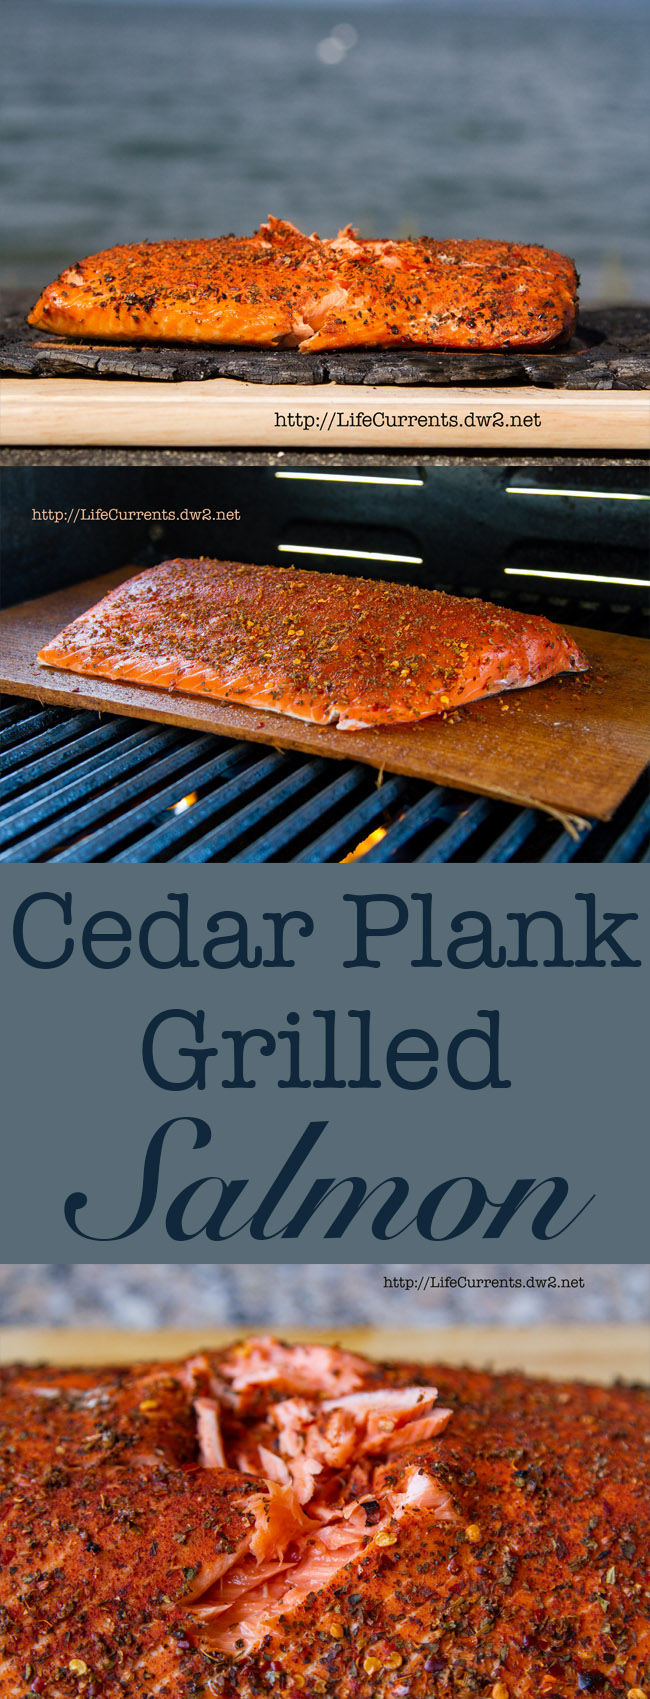 Cedar Plank Grilled Salmon - how to grill salmon on a cedar l=plank, all the tips and tricks you'll need to create a delicious dinner!